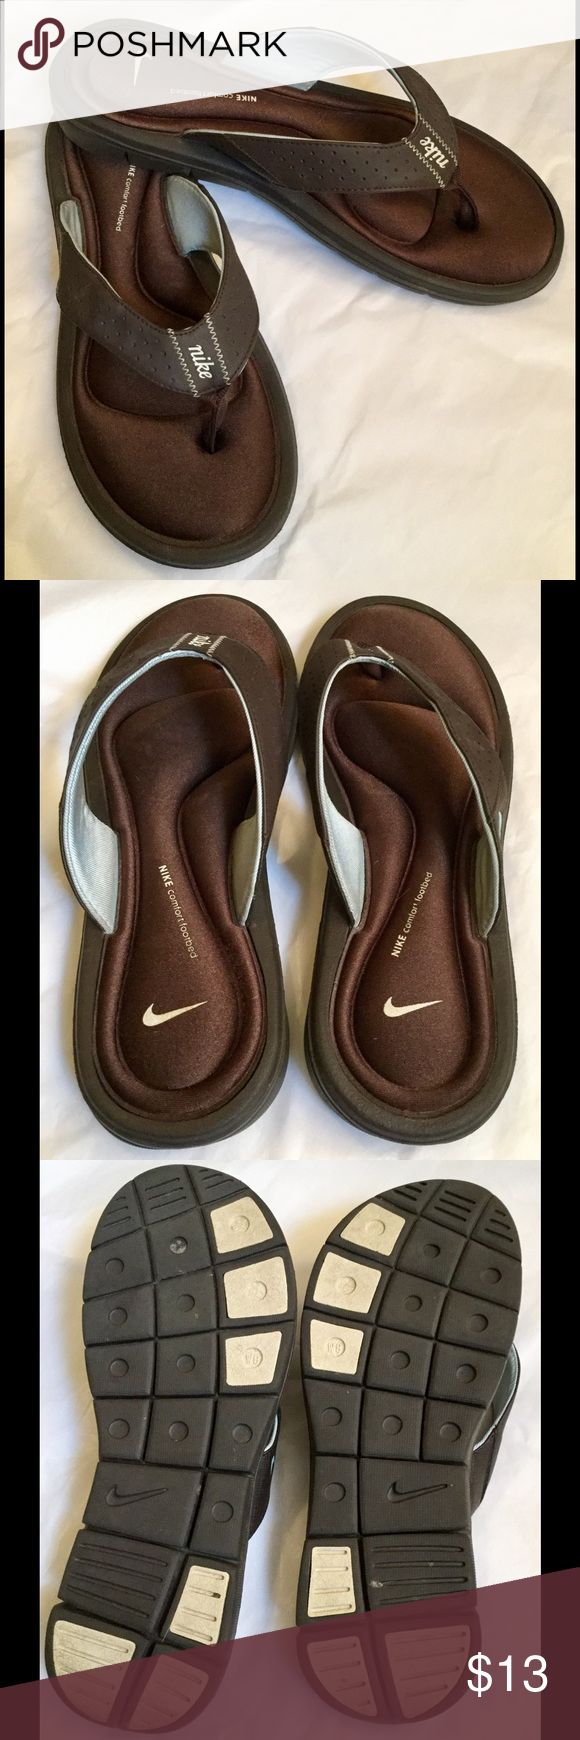 NIKE Comfort Thong Flip Flops W8 NIKE Comfort Thong Flip Flops Women's 8. Excellent, preowned condition. (See pics for few signs on dirt). The Comfort memory foam footbed is like new and a dream to walk in. Brown and powder blue. Thanks for looking ☺️ Nike Shoes Sandals